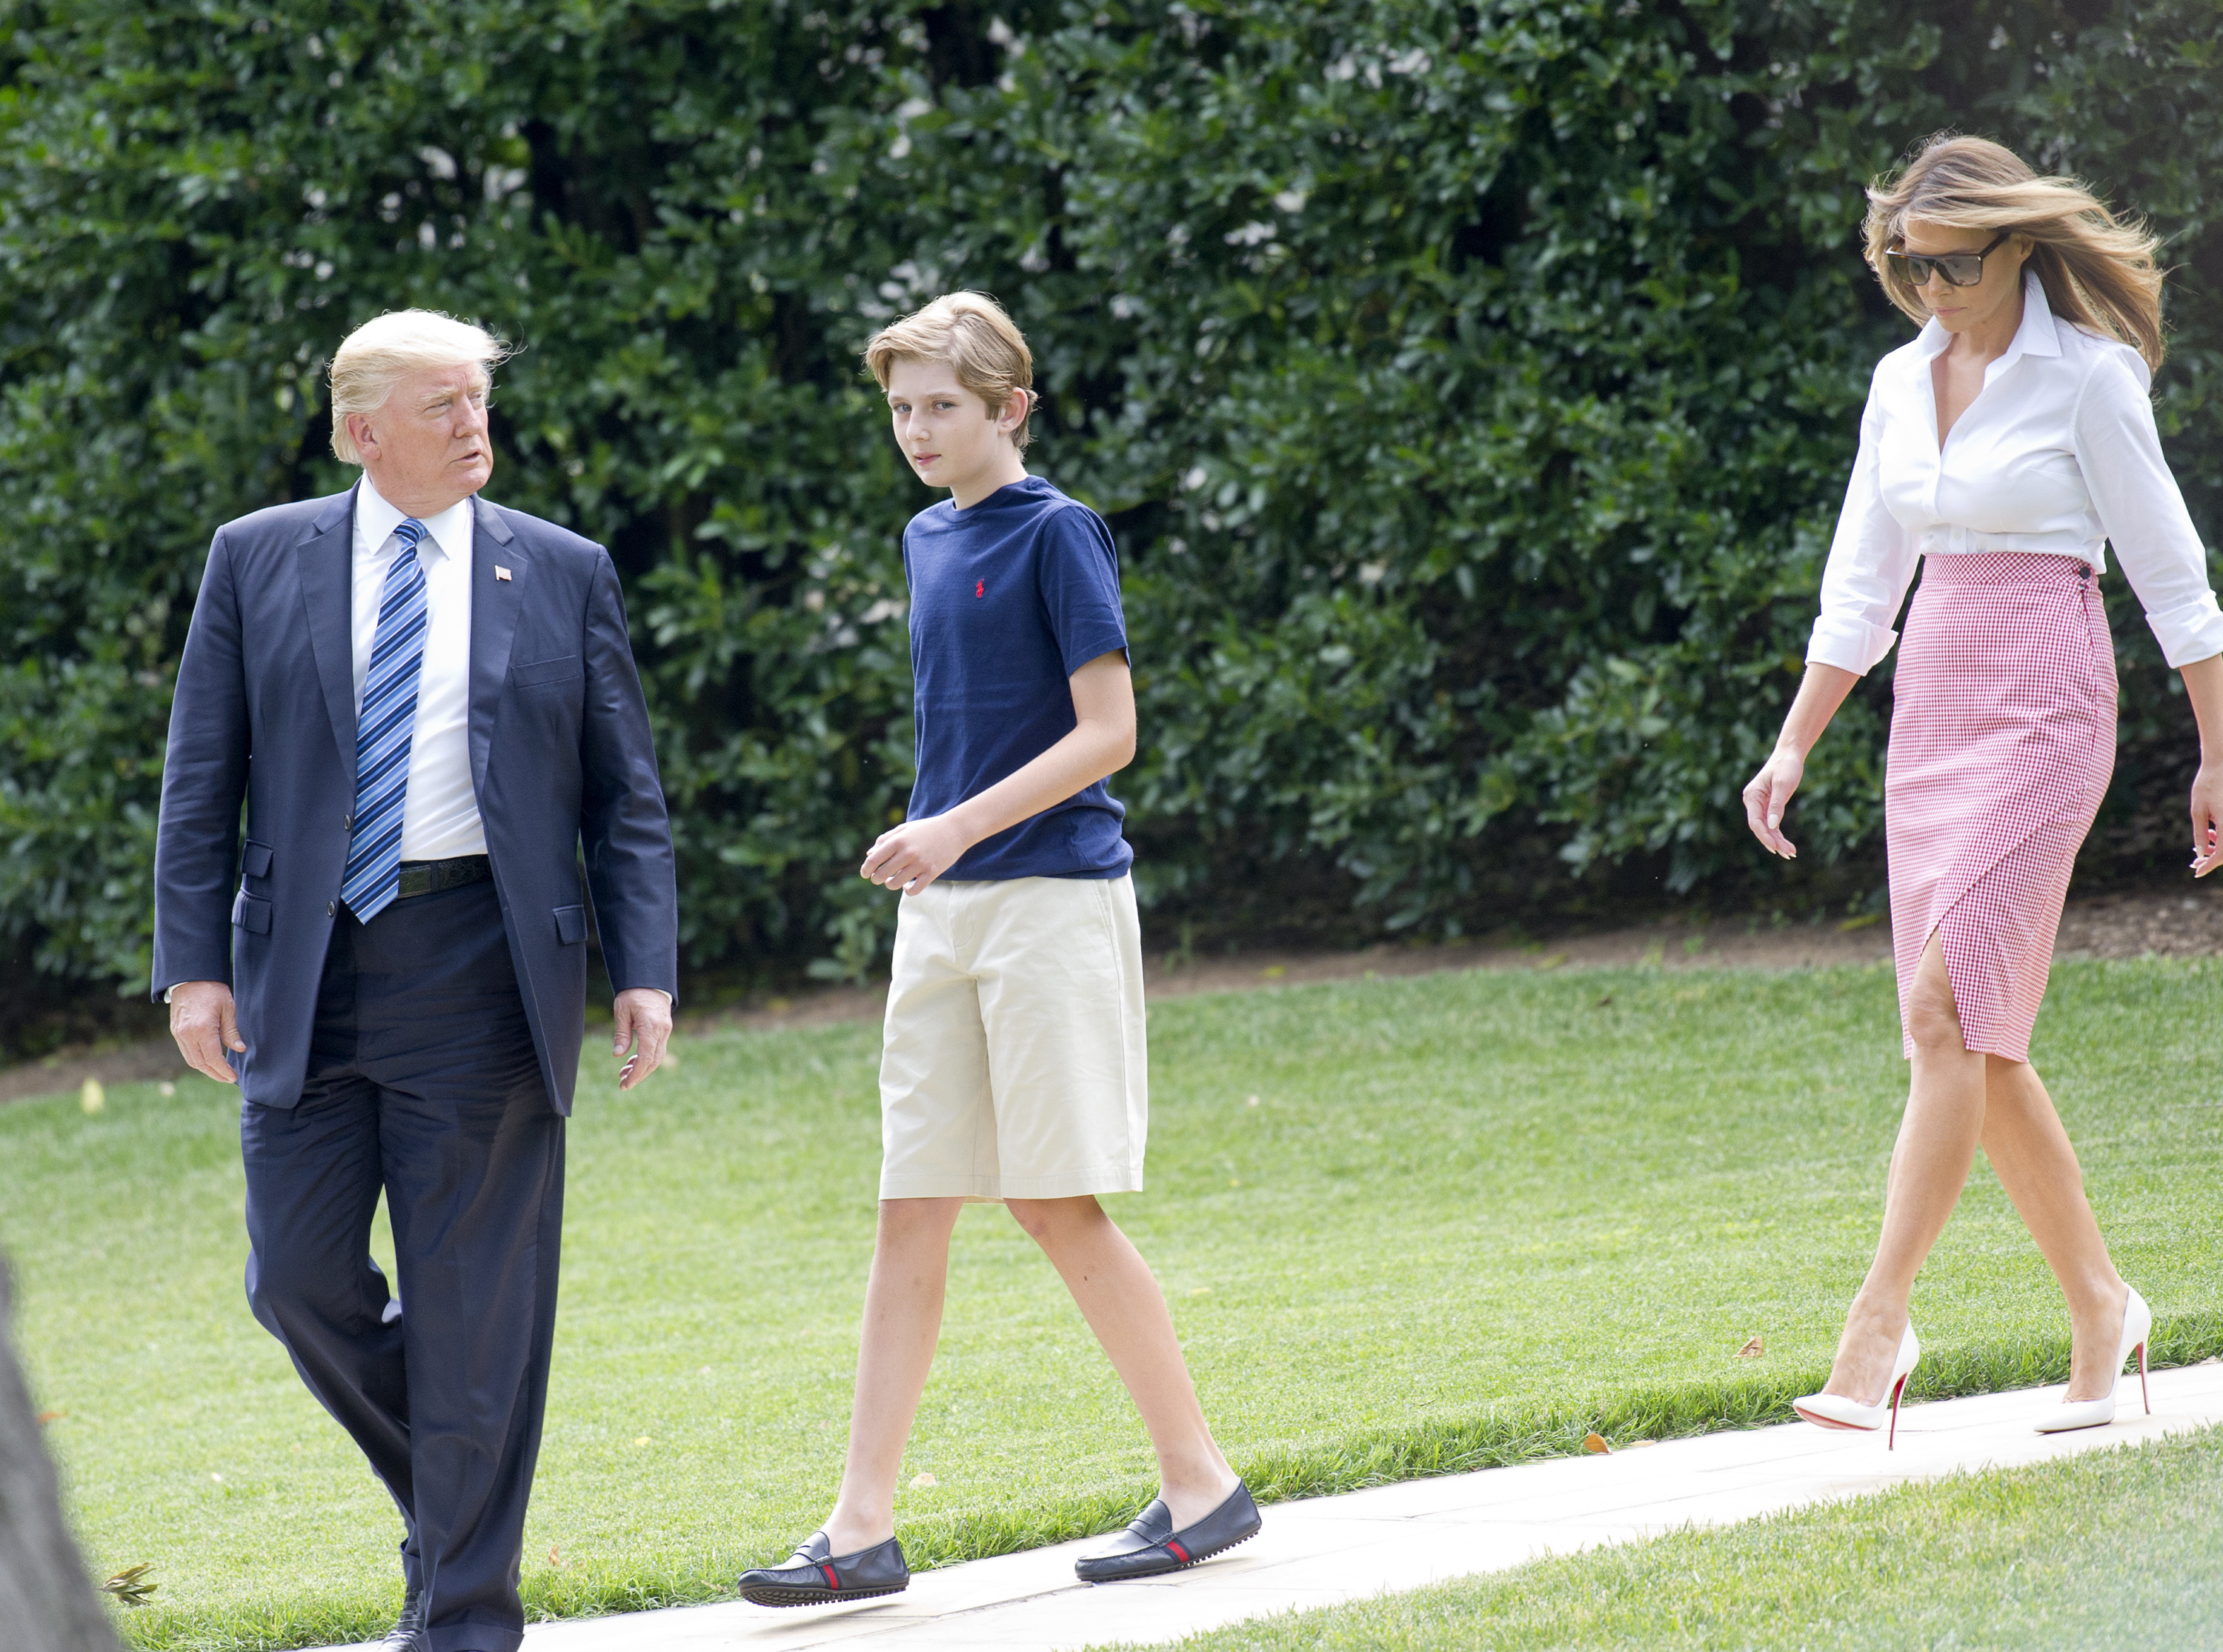 June 30, 2017 - Washington, District of Columbia, United States of America - United States President Donald J. Trump accompanied by first lady Melania Trump and son Barron depart the White House in Washington, DC for a weekend in Westminster, NJ on Friday, June 30, 2017. .Credit: Ron Sachs / CNP, Image: 339751248, License: Rights-managed, Restrictions: , Model Release: no, Credit line: Profimedia, Zuma Press - News